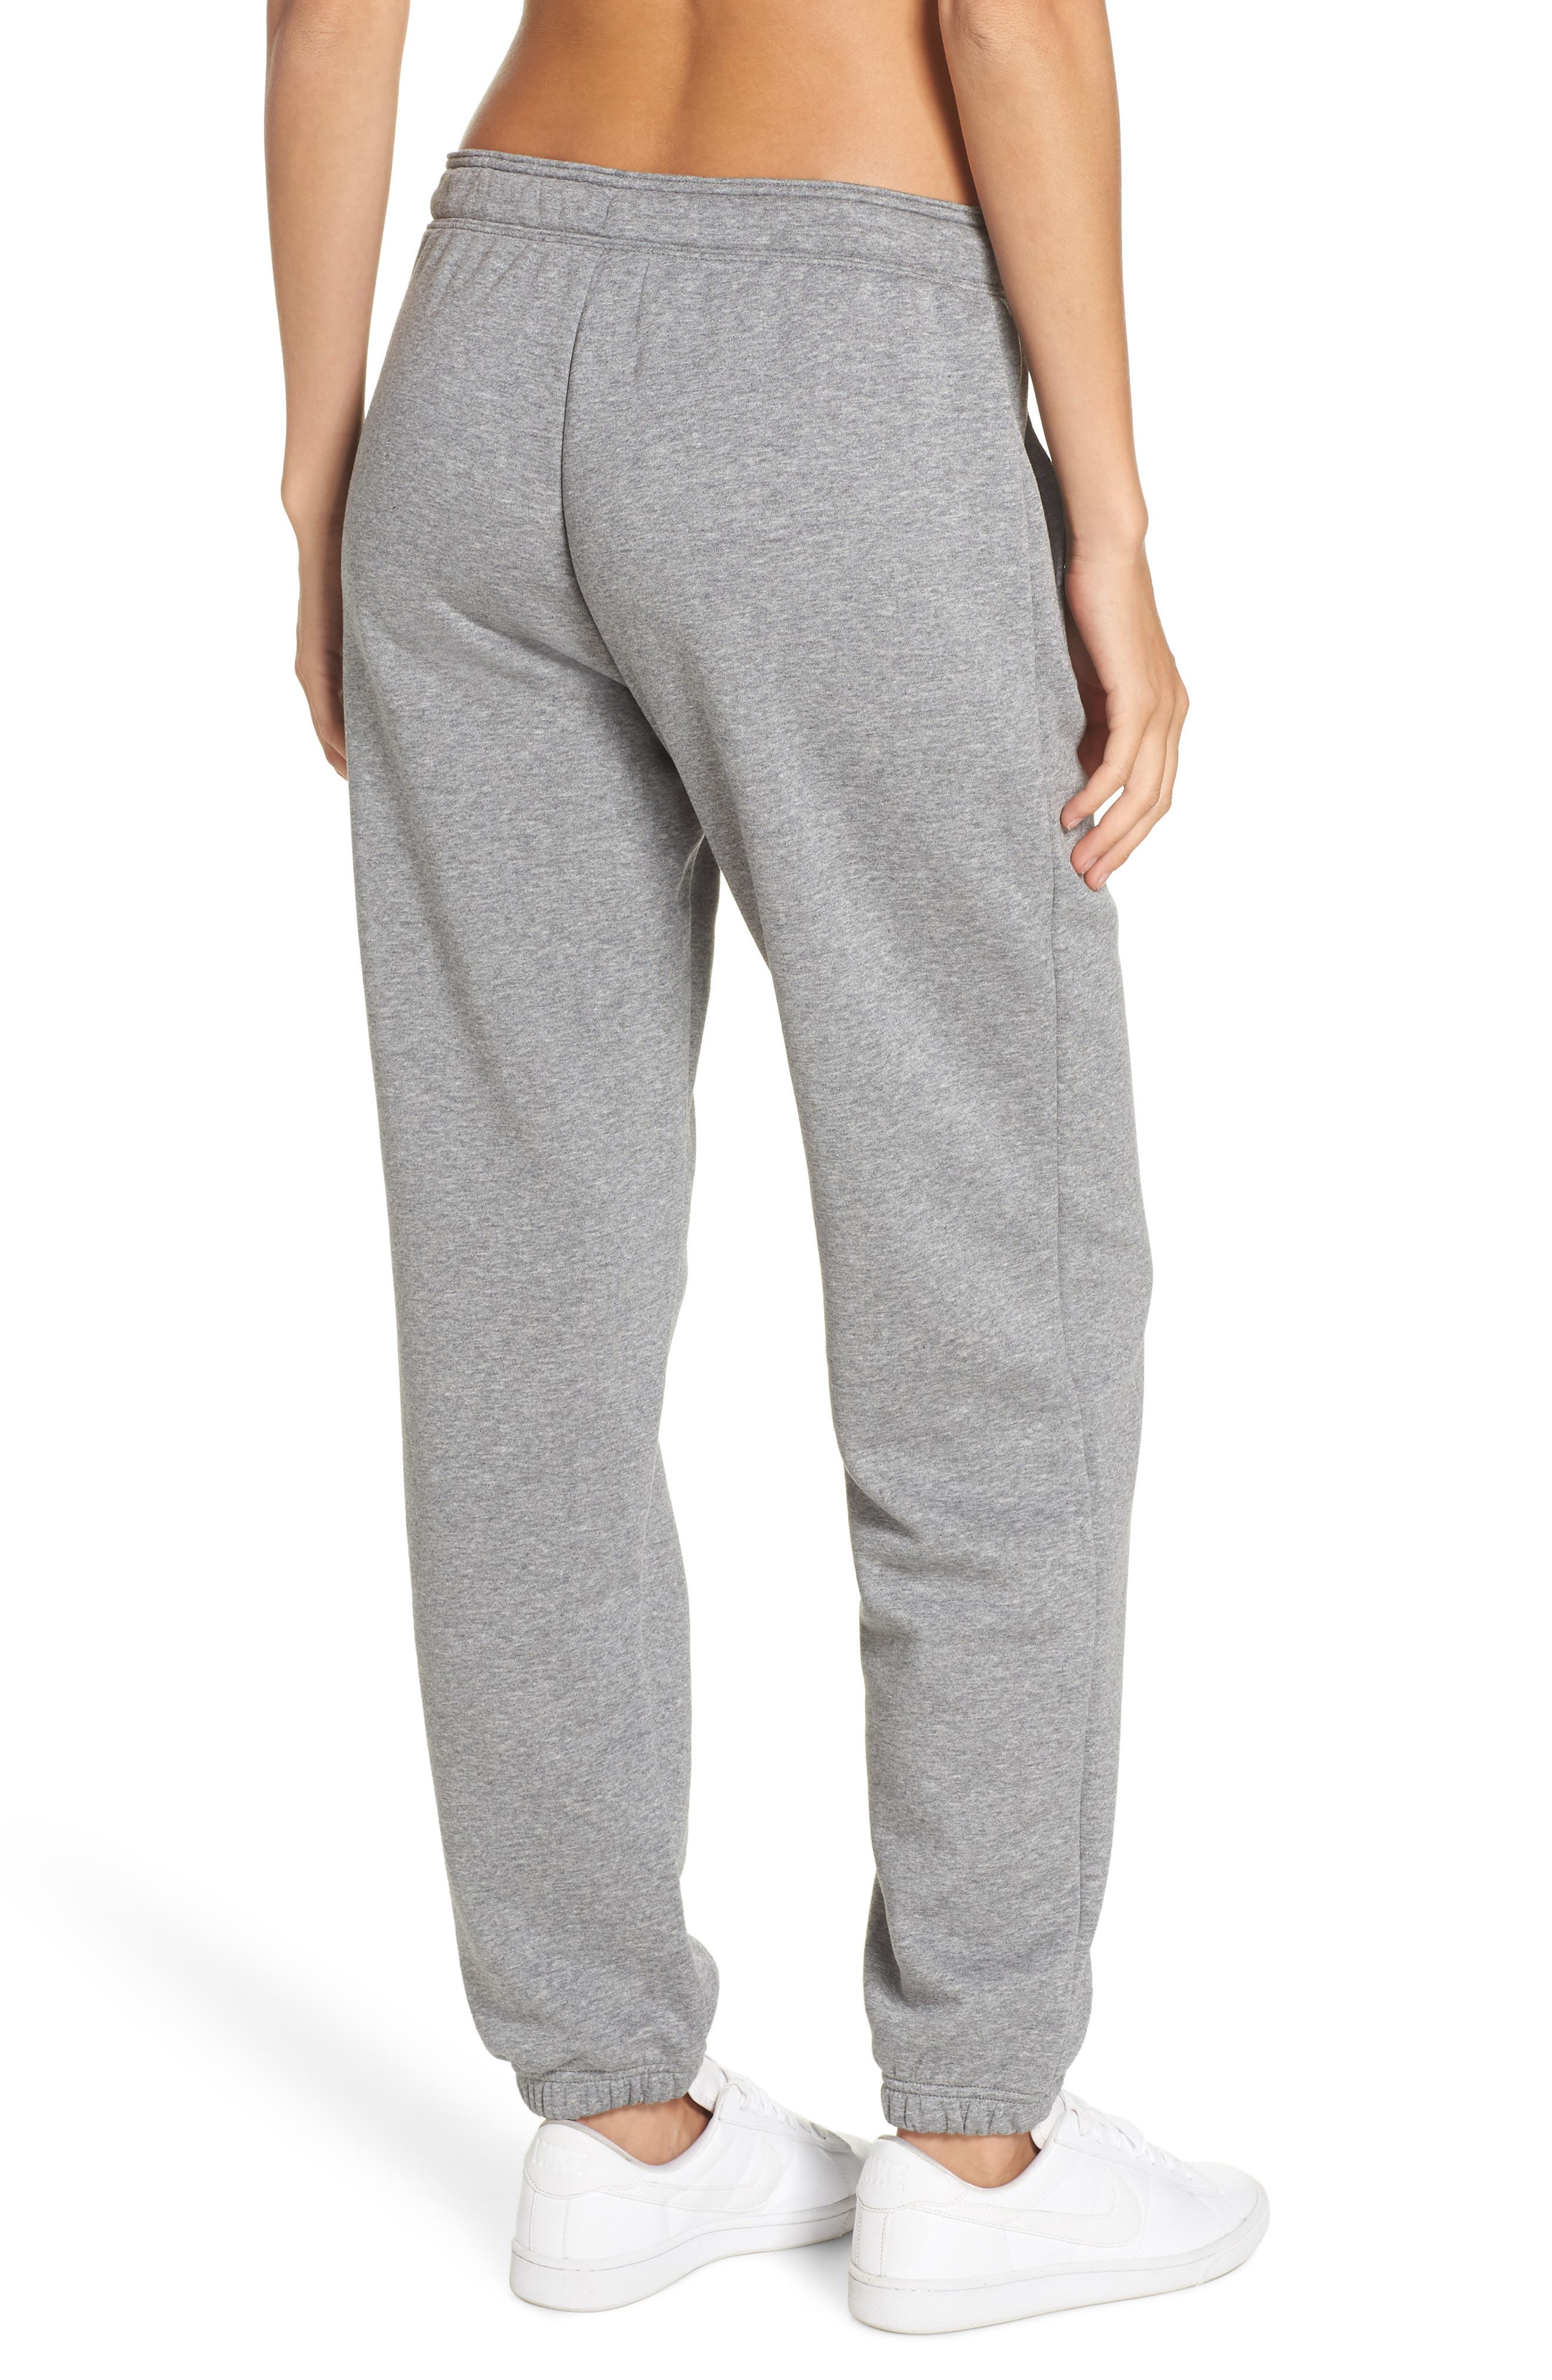 NSW Rally Pants,                             Alternate thumbnail 2, color,                             CARBON HEATHER/ COOL GREY